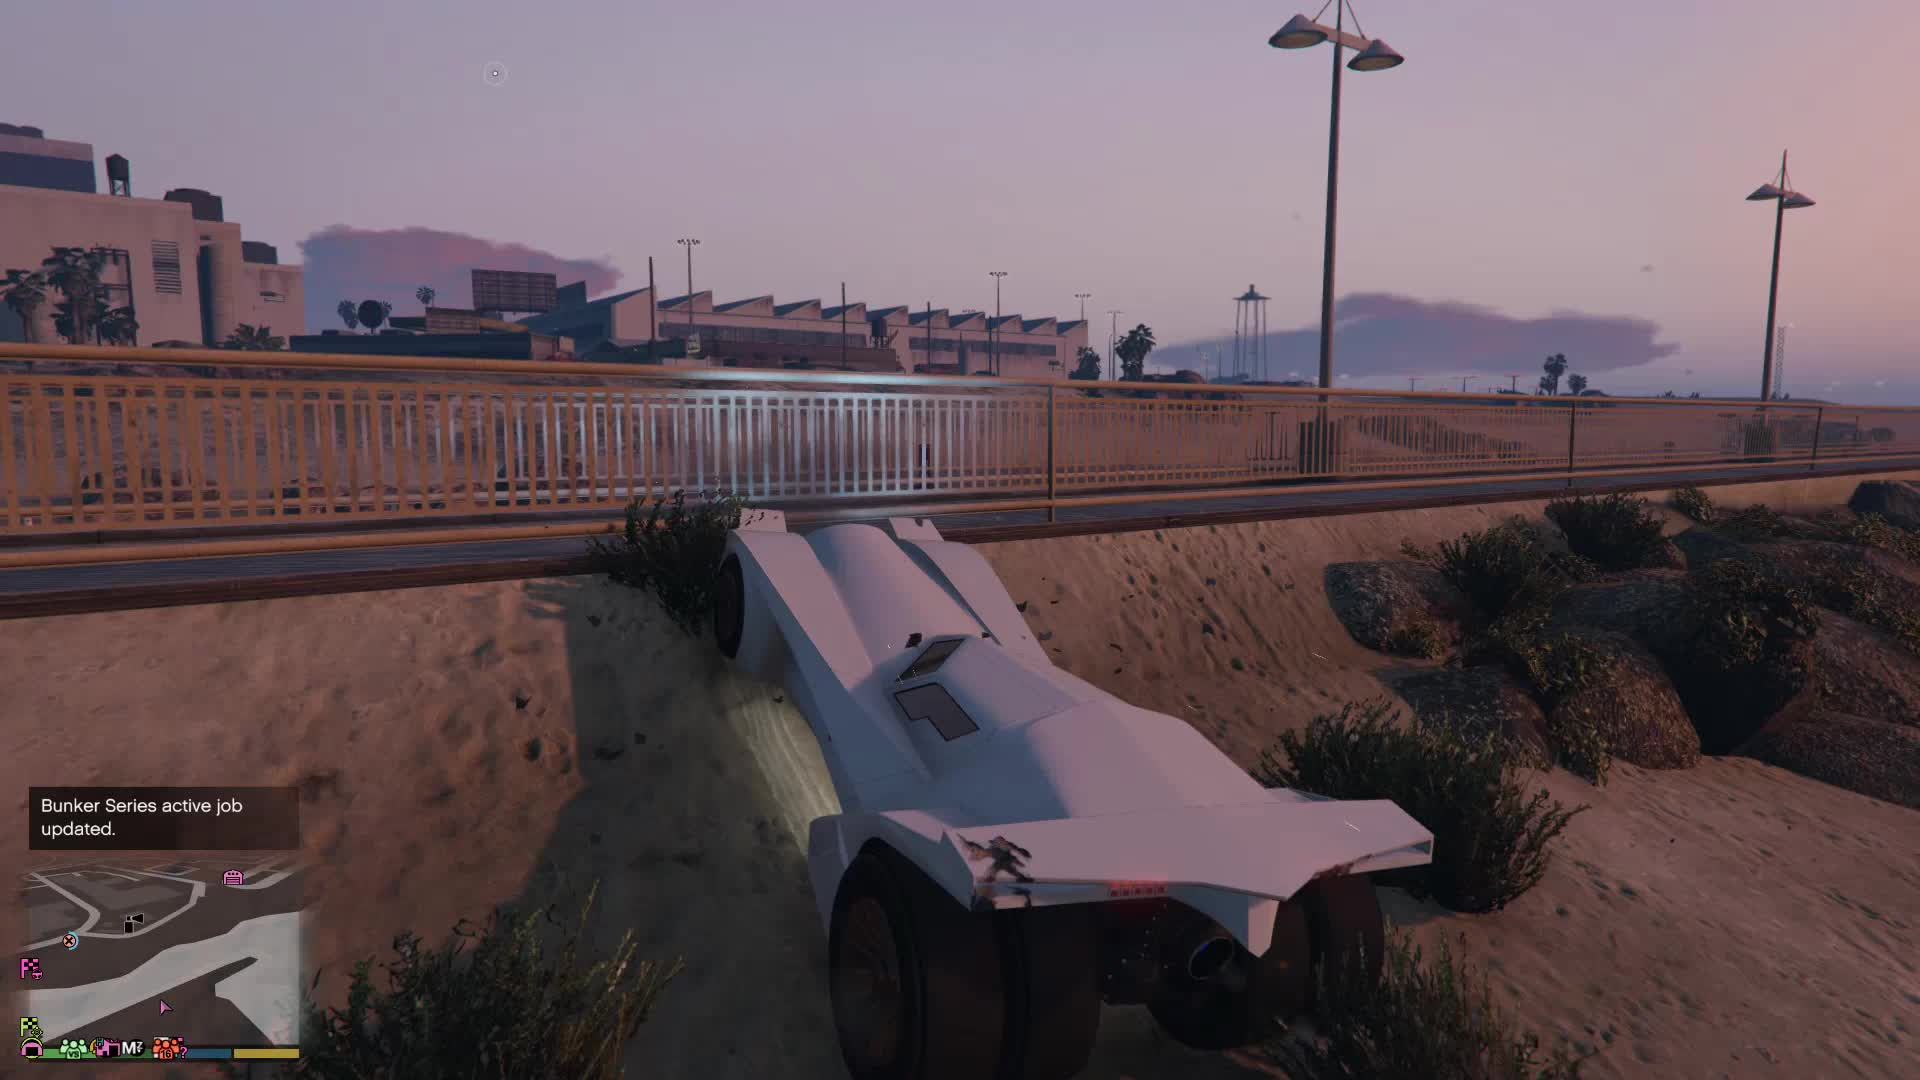 GIF GTAV - batmobile flight GIFs